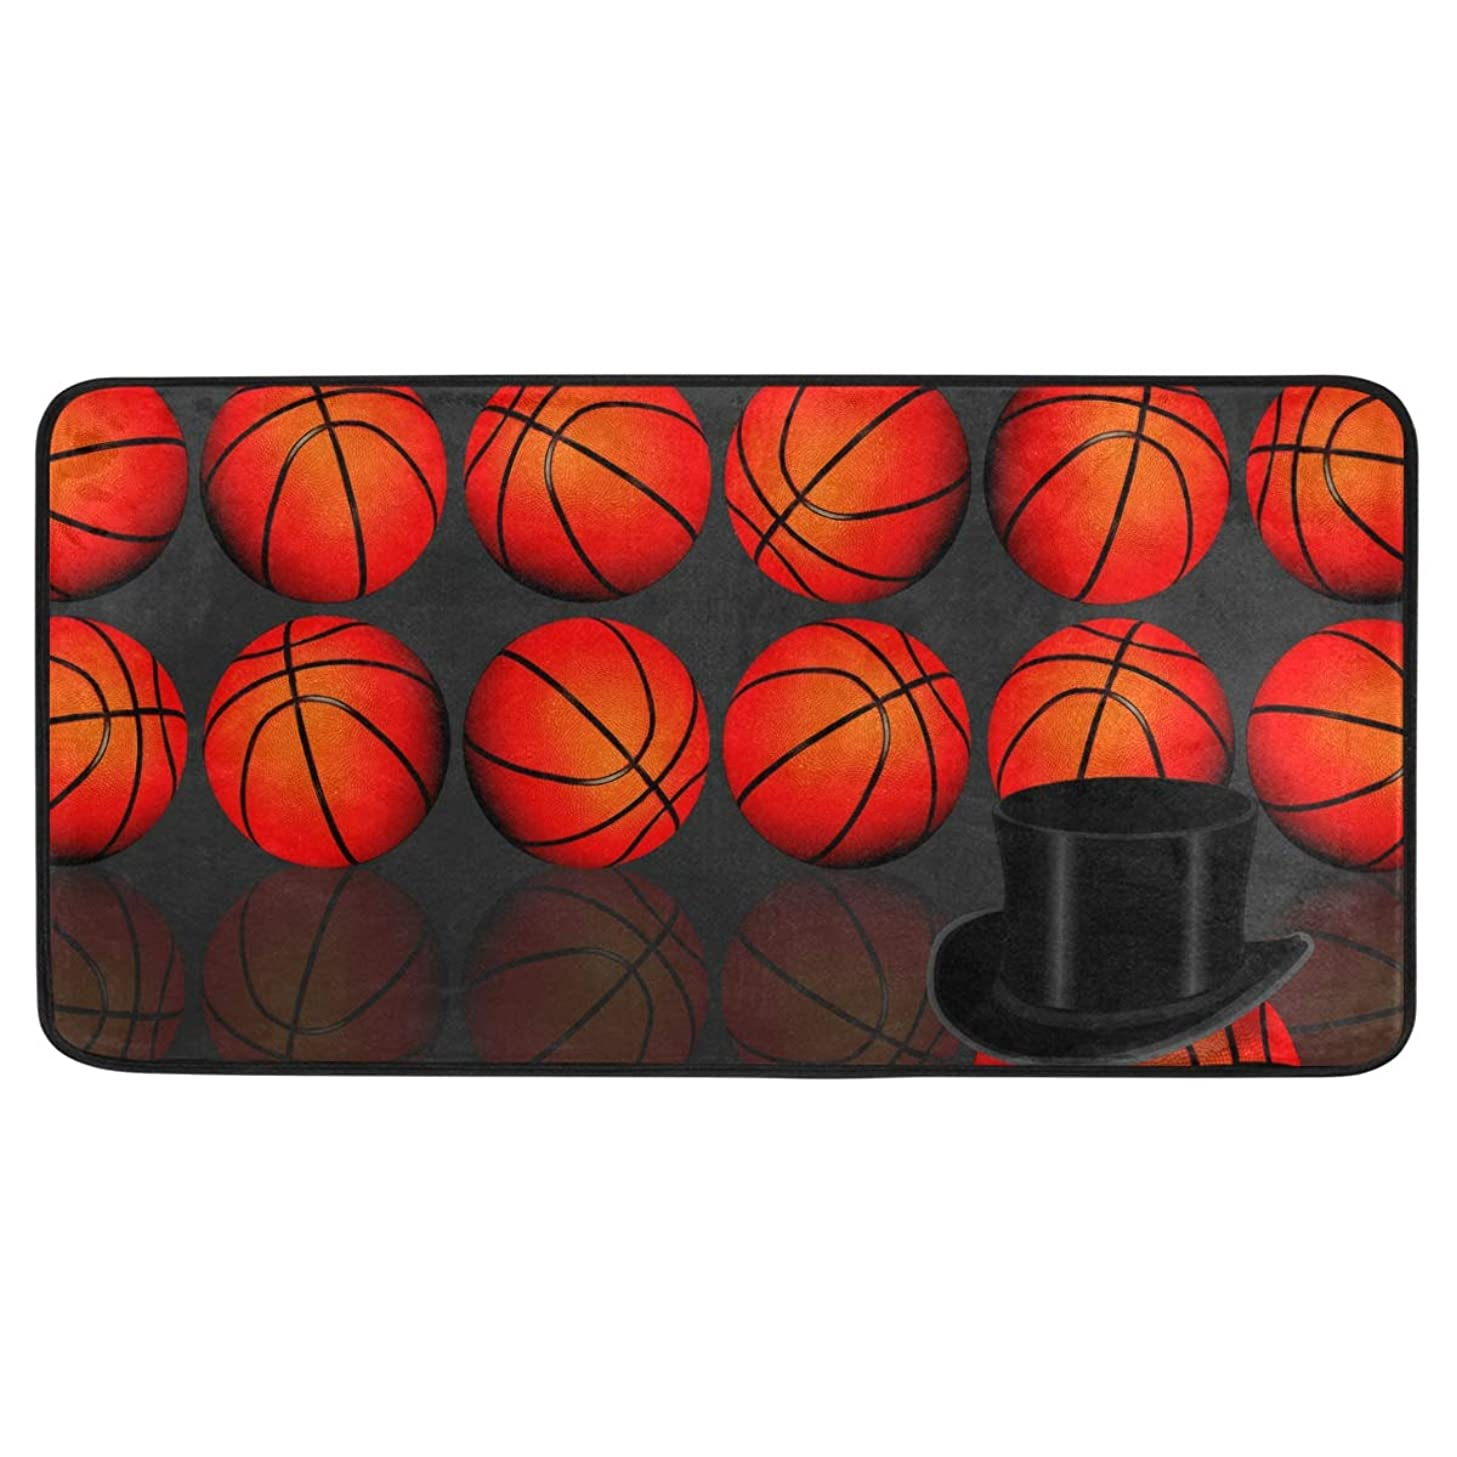 ALAZA Basketball Standing Mat Kitchen Rug Mat, Anti Fatigue Comfort Flooring, Commercial Grade Pads, Waterproof, Ergonomic Floor Pad, Rugs for Office Stand Up Desk, 39x20in